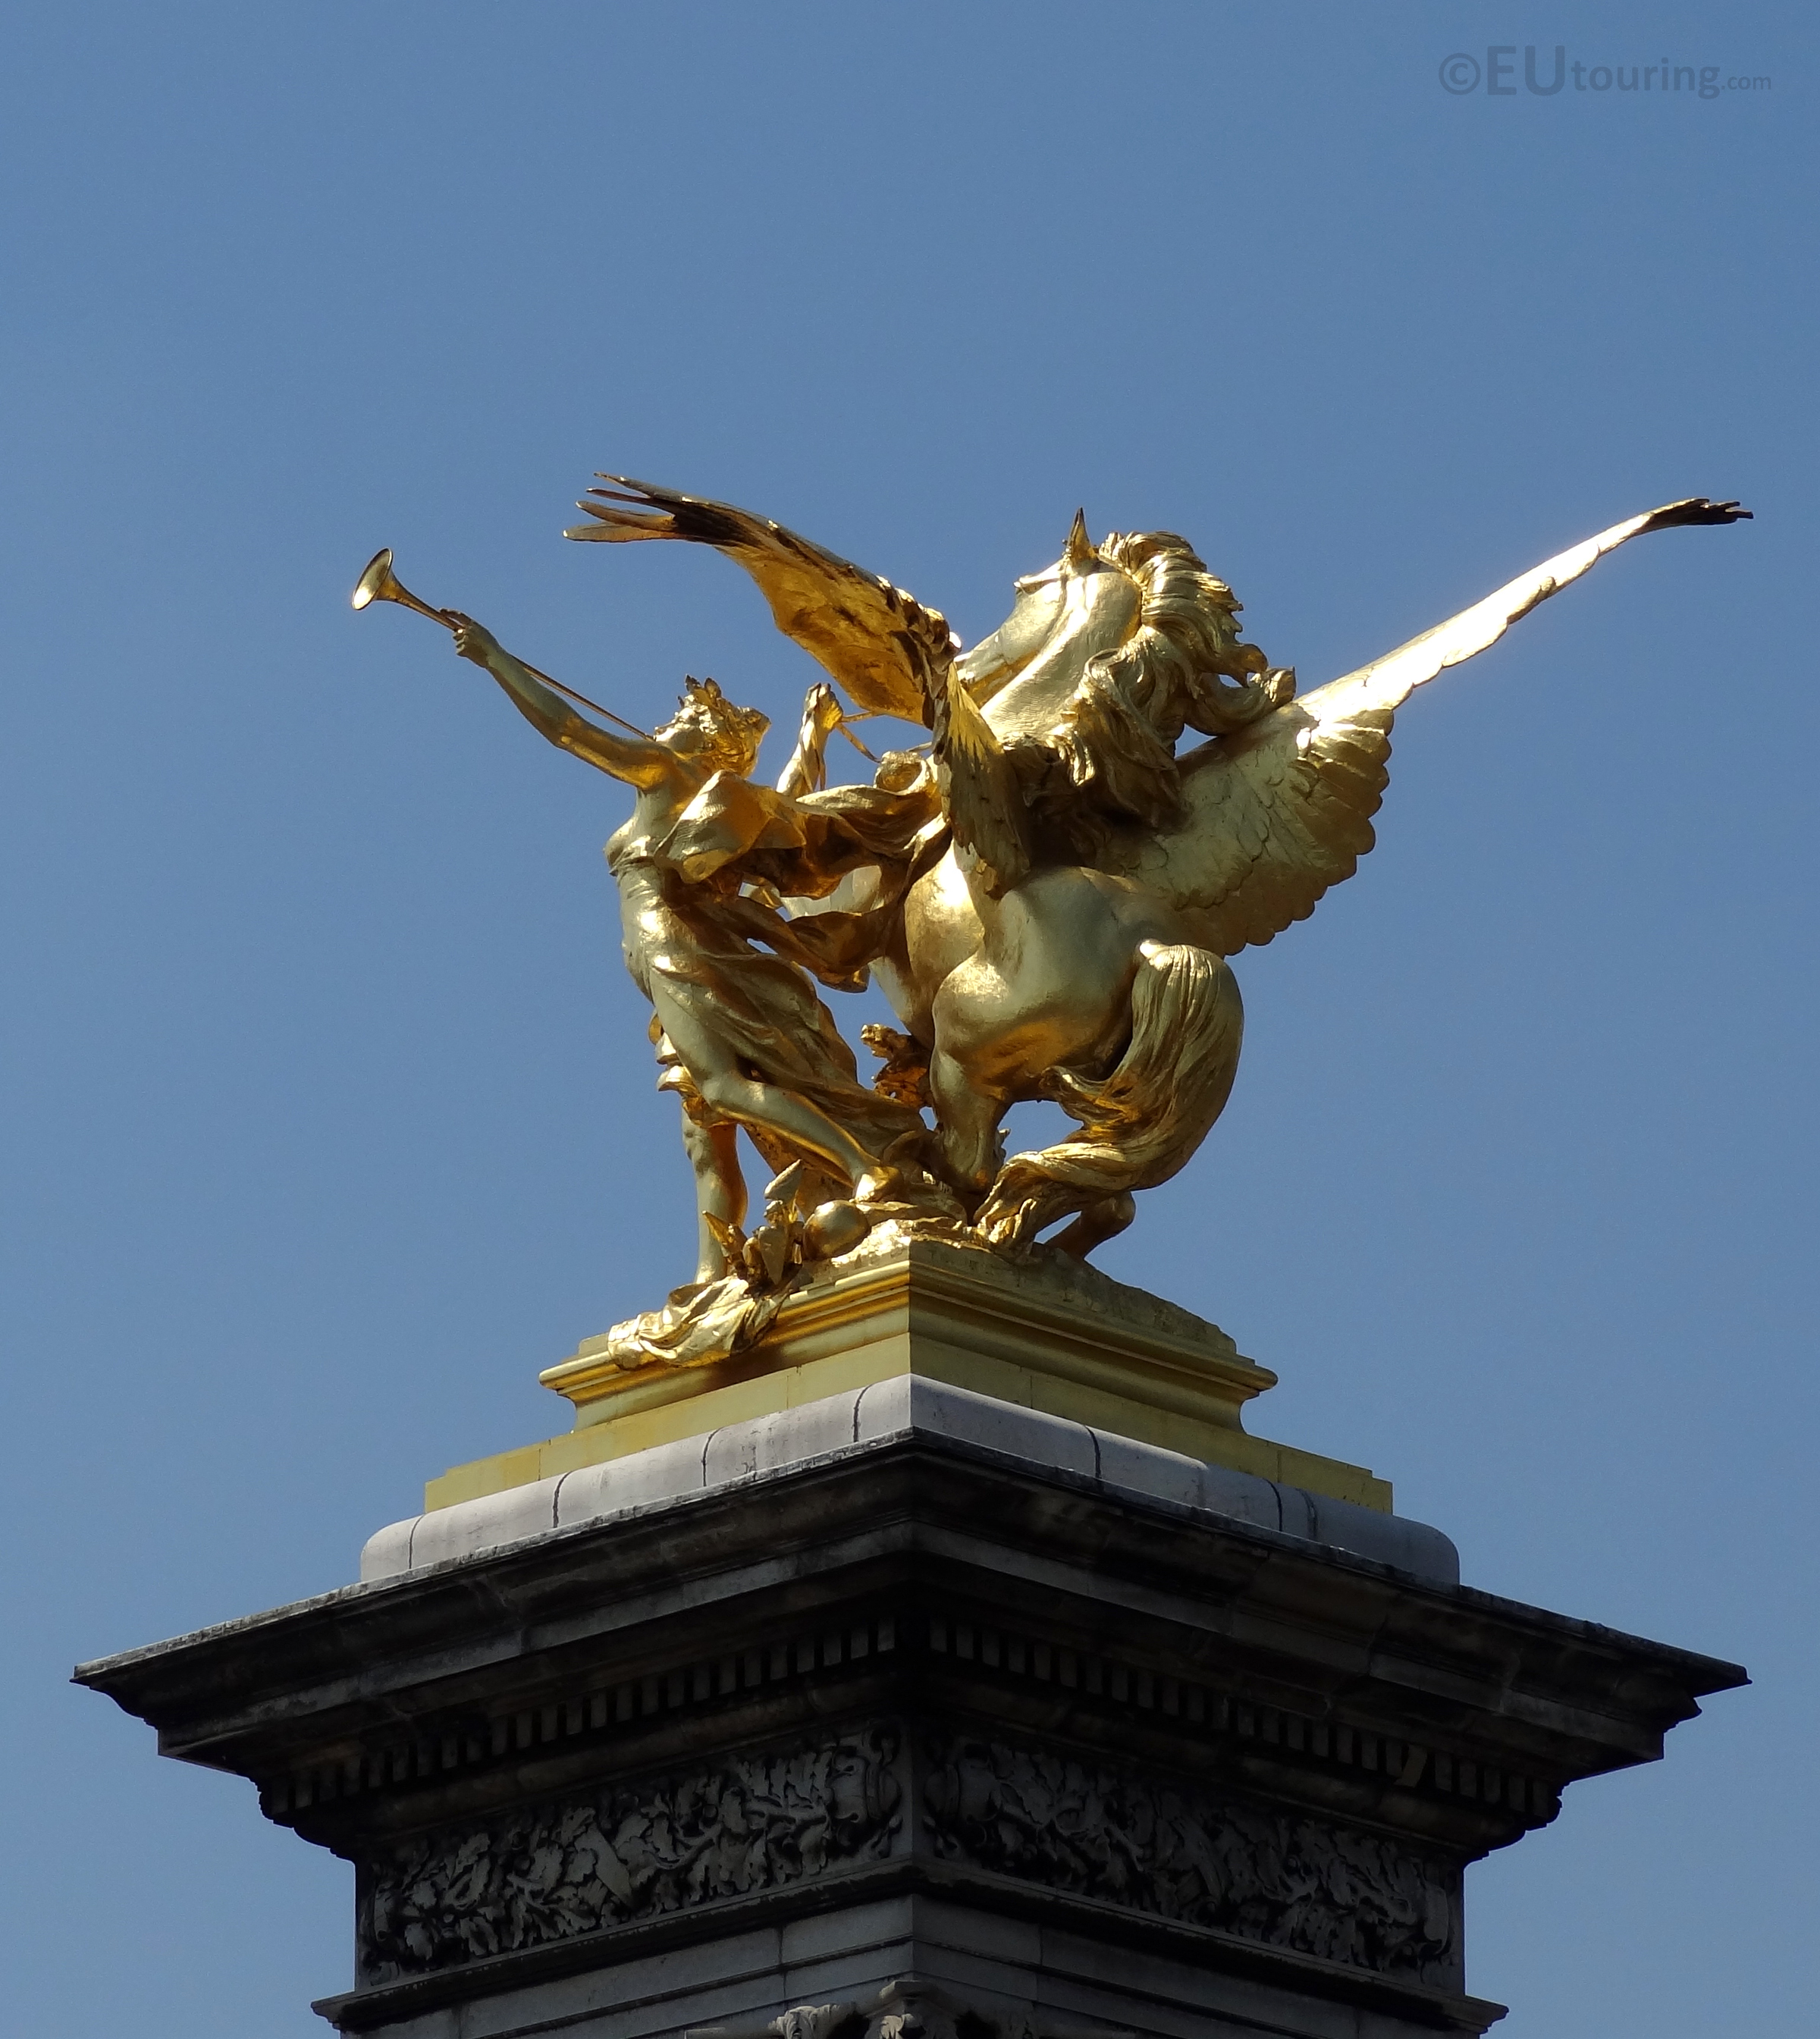 Golden statue of Fame and Pegasus